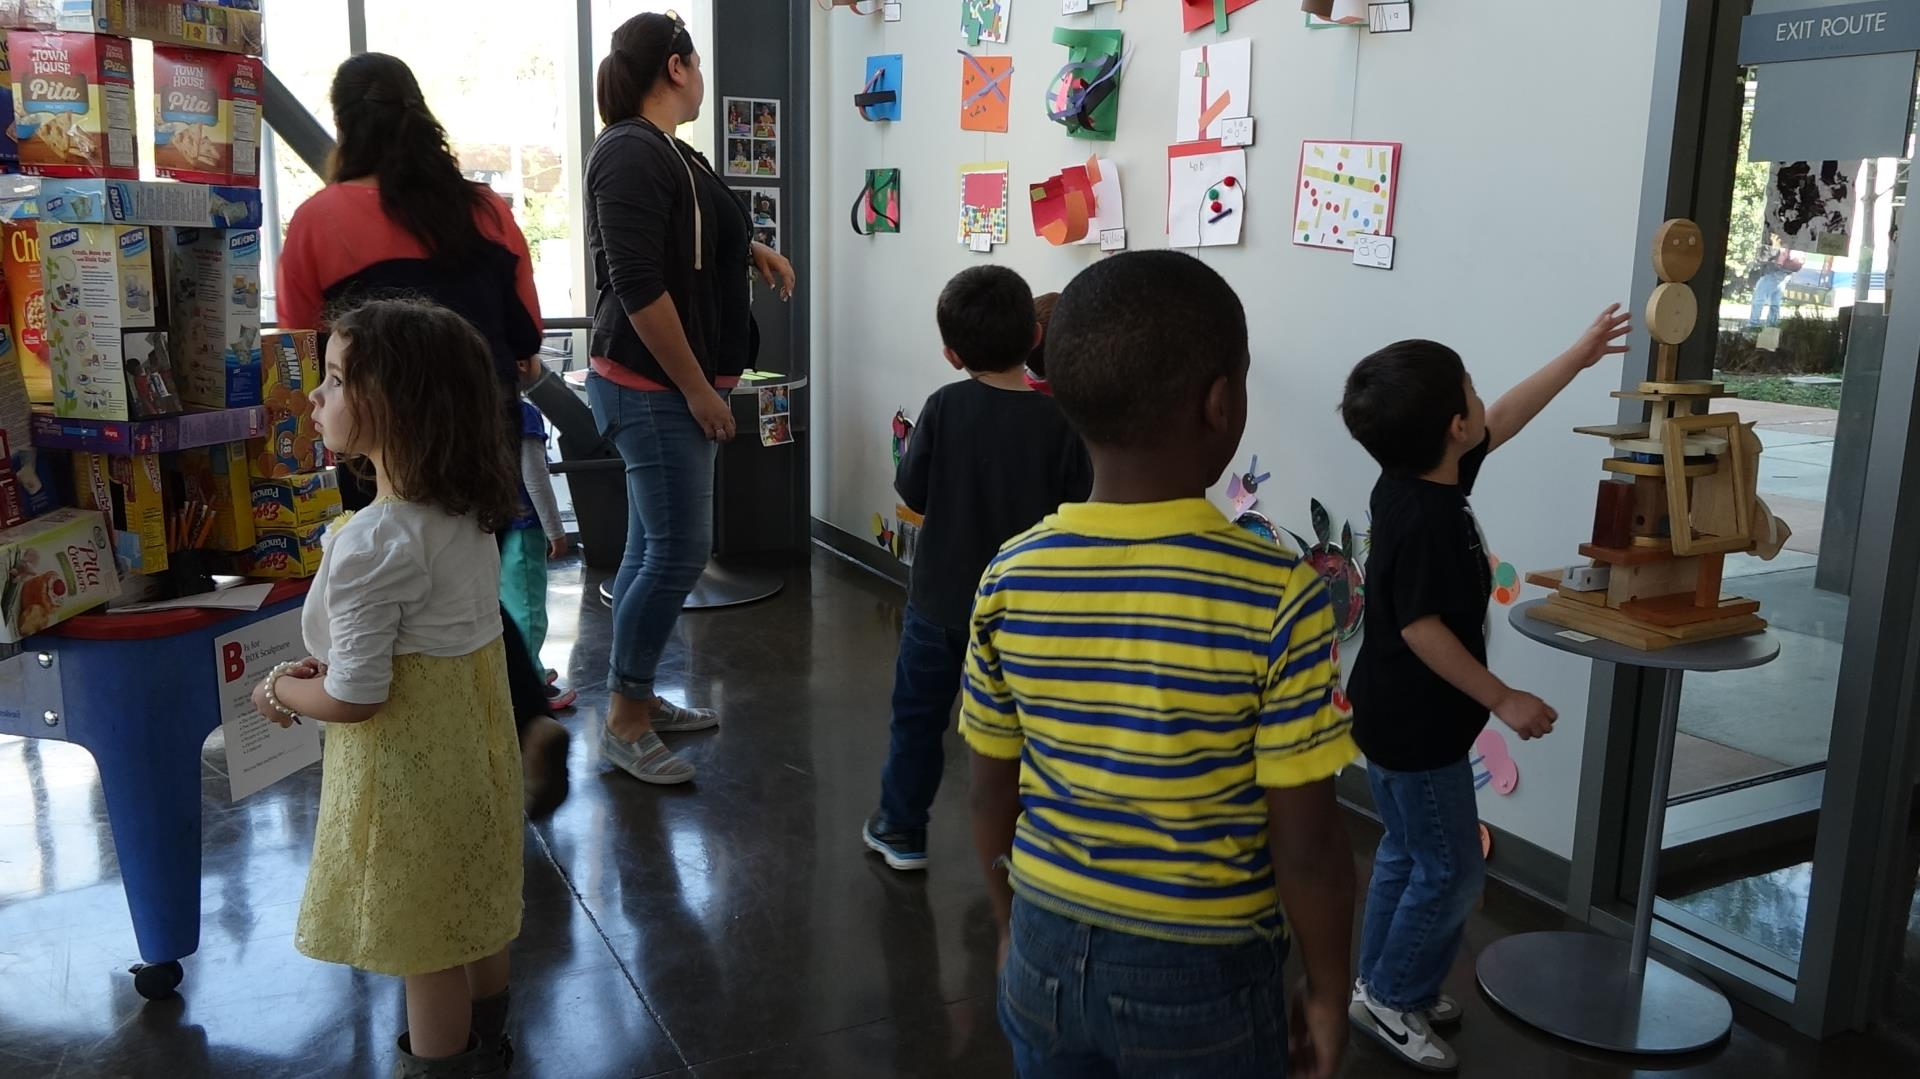 crowd gathers at learning ladder art show 2016